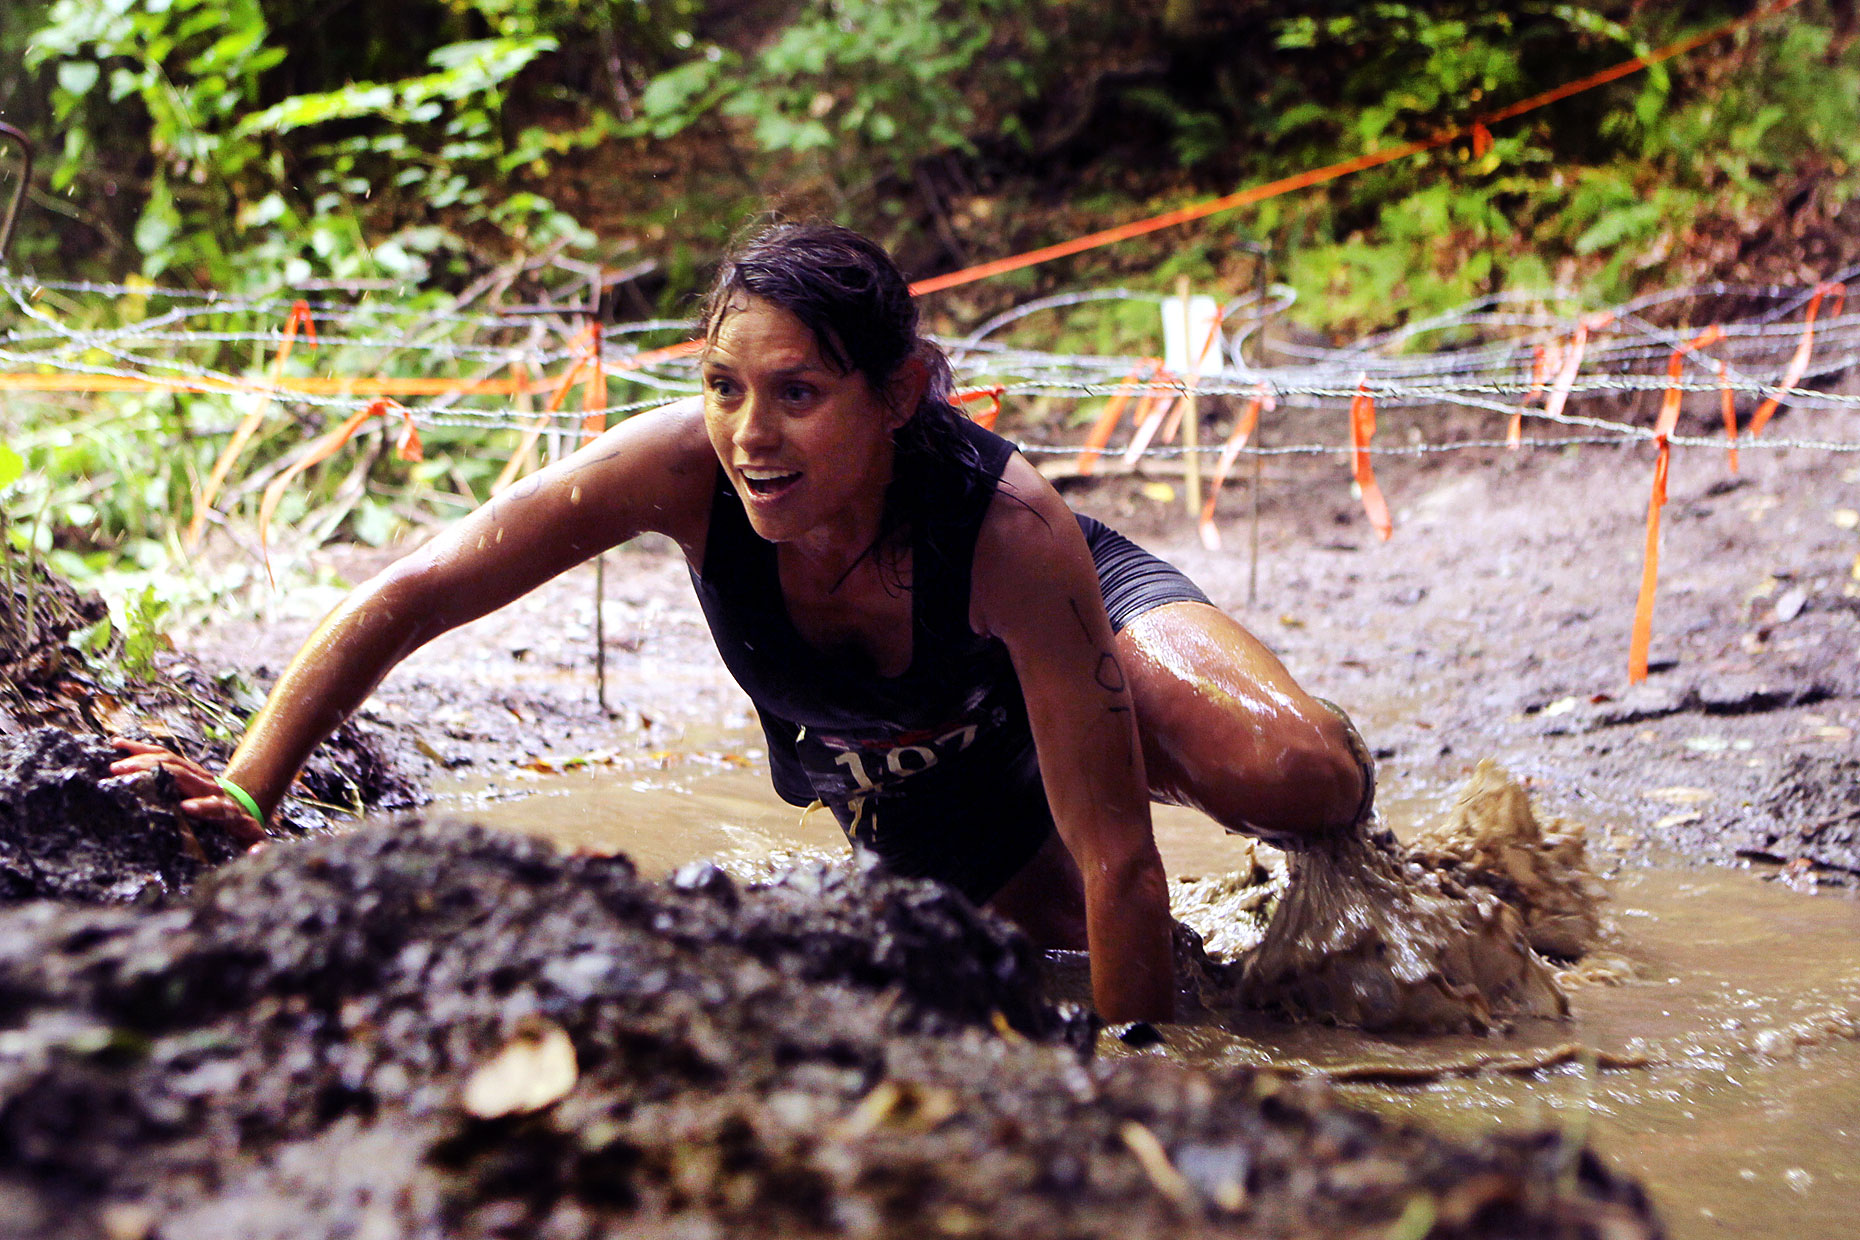 A participant in the Bone Frog challenge competition climbs a muddy slope.